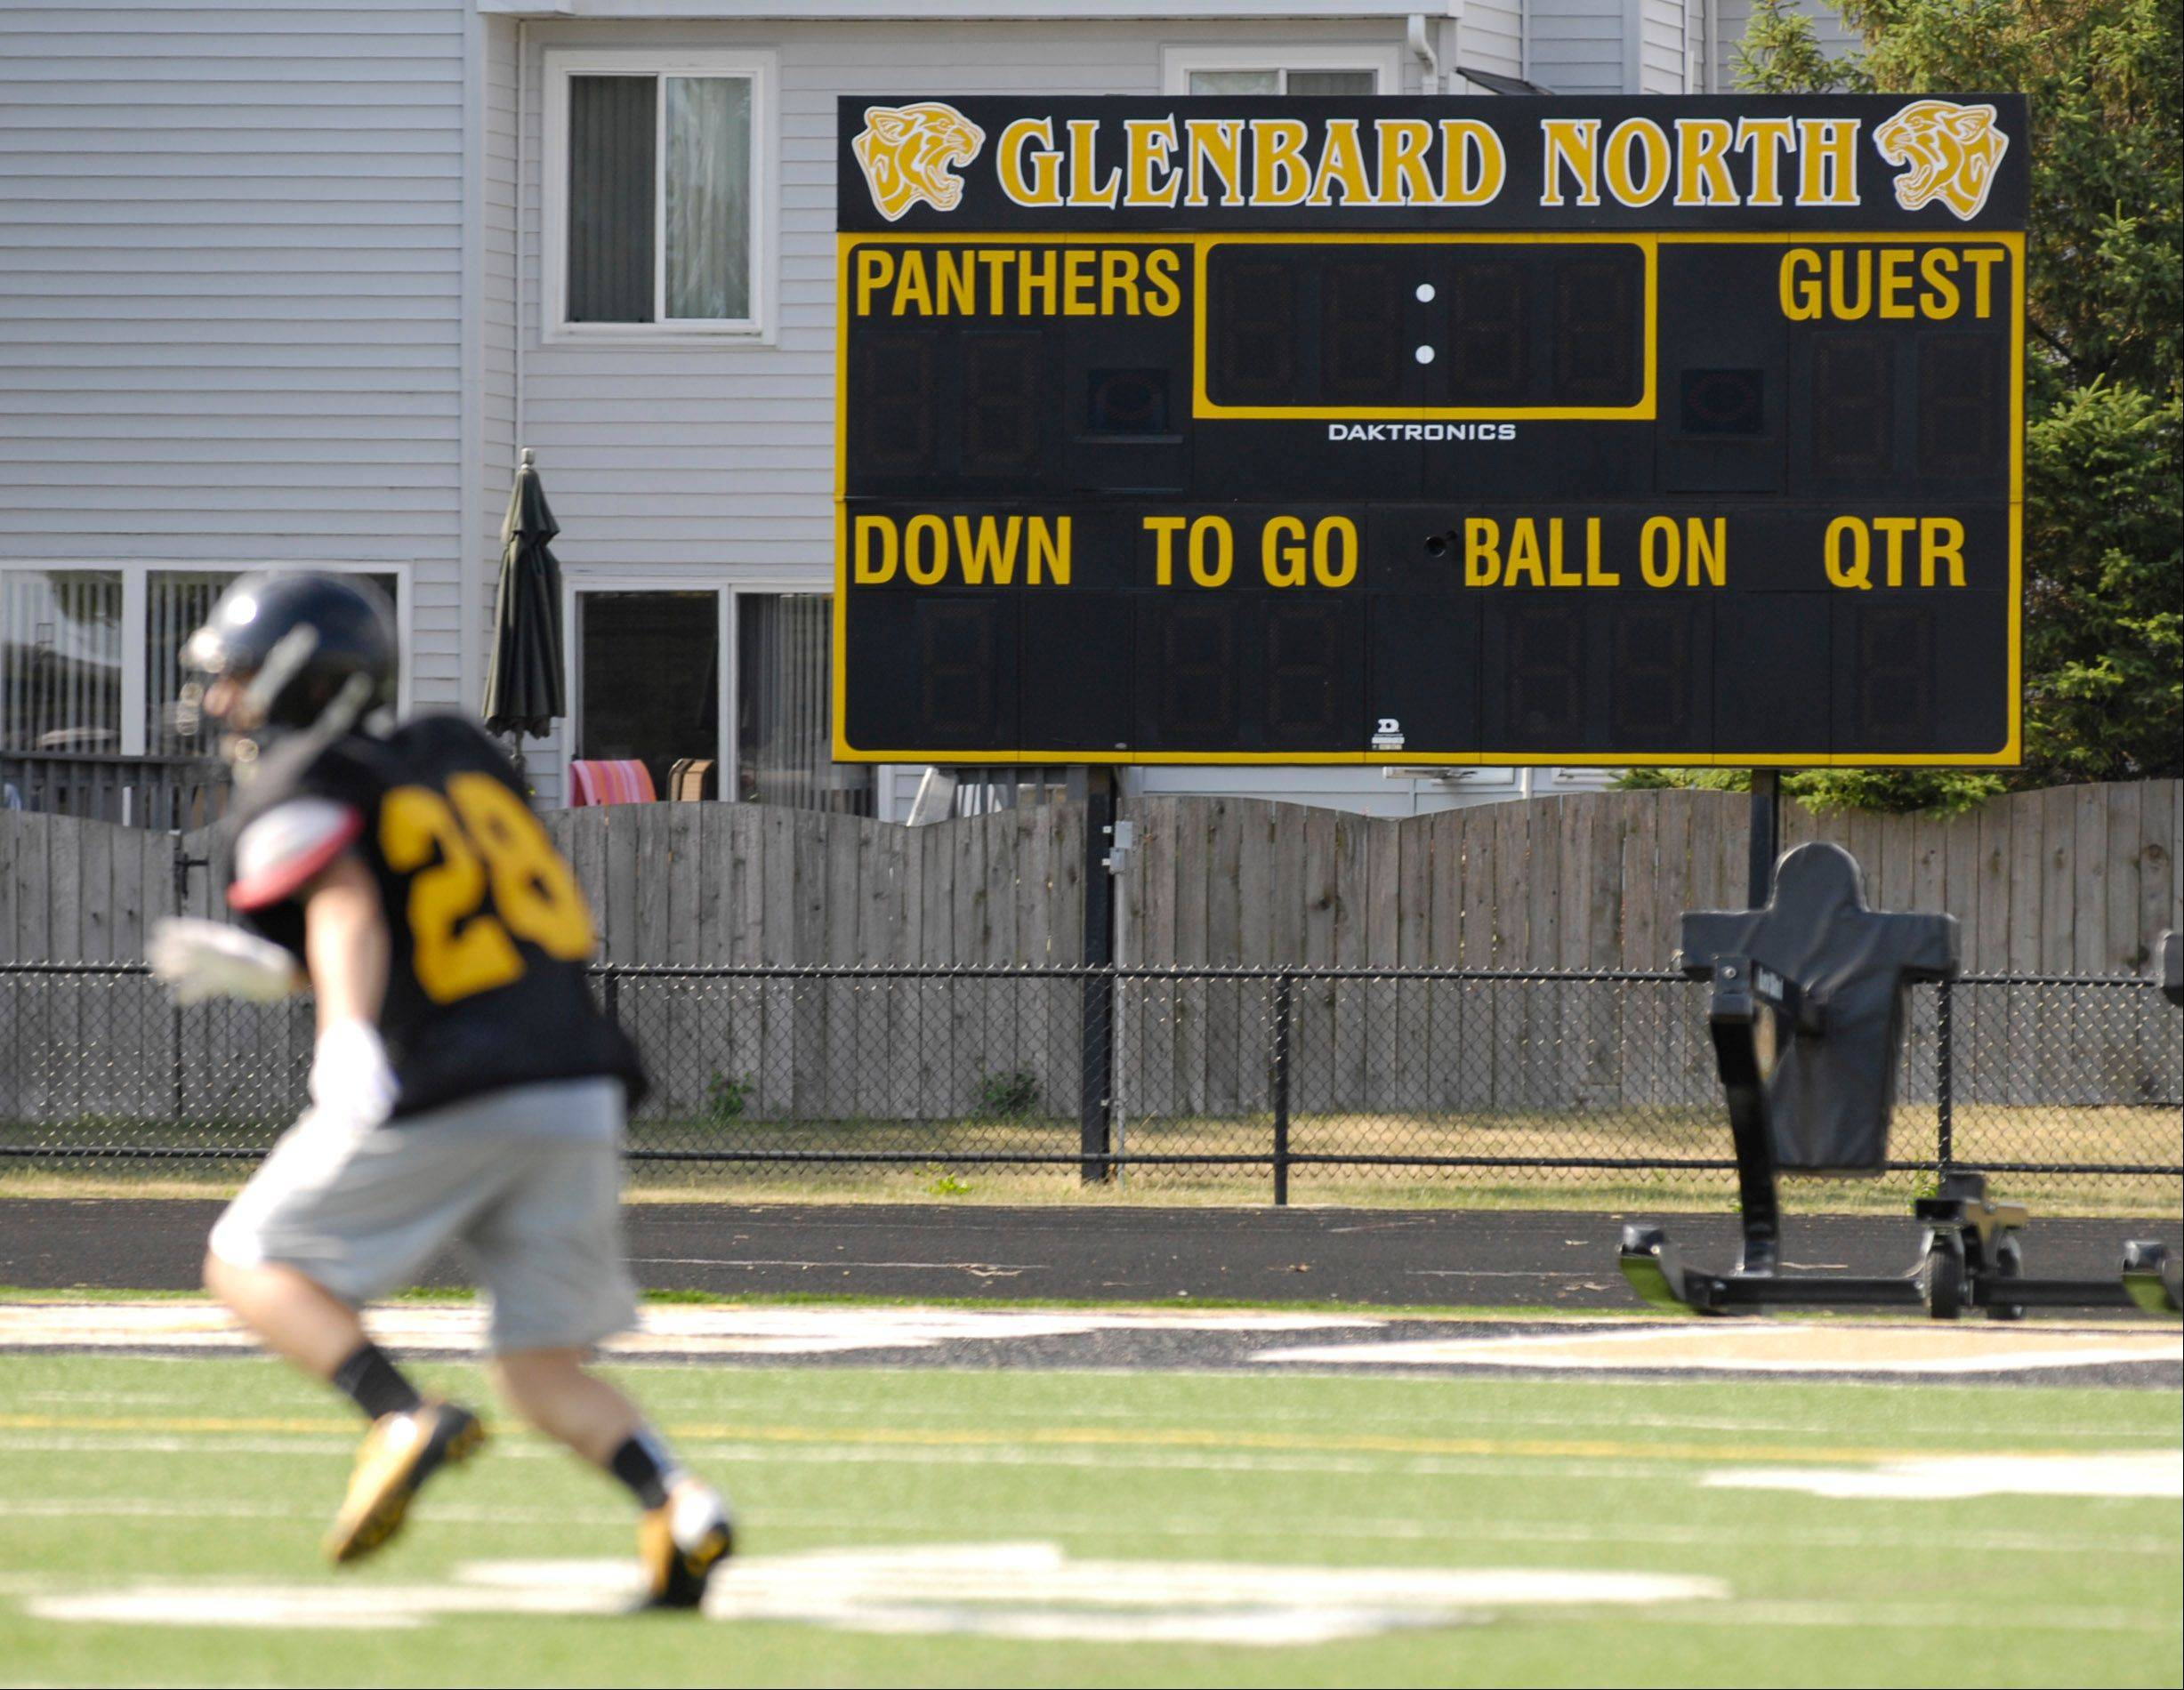 LED advertising panels will be attached to eight existing scoreboards at Glenbard High School District 87 athletic facilities, including the football scoreboard at Glenbard North in Carol Stream.